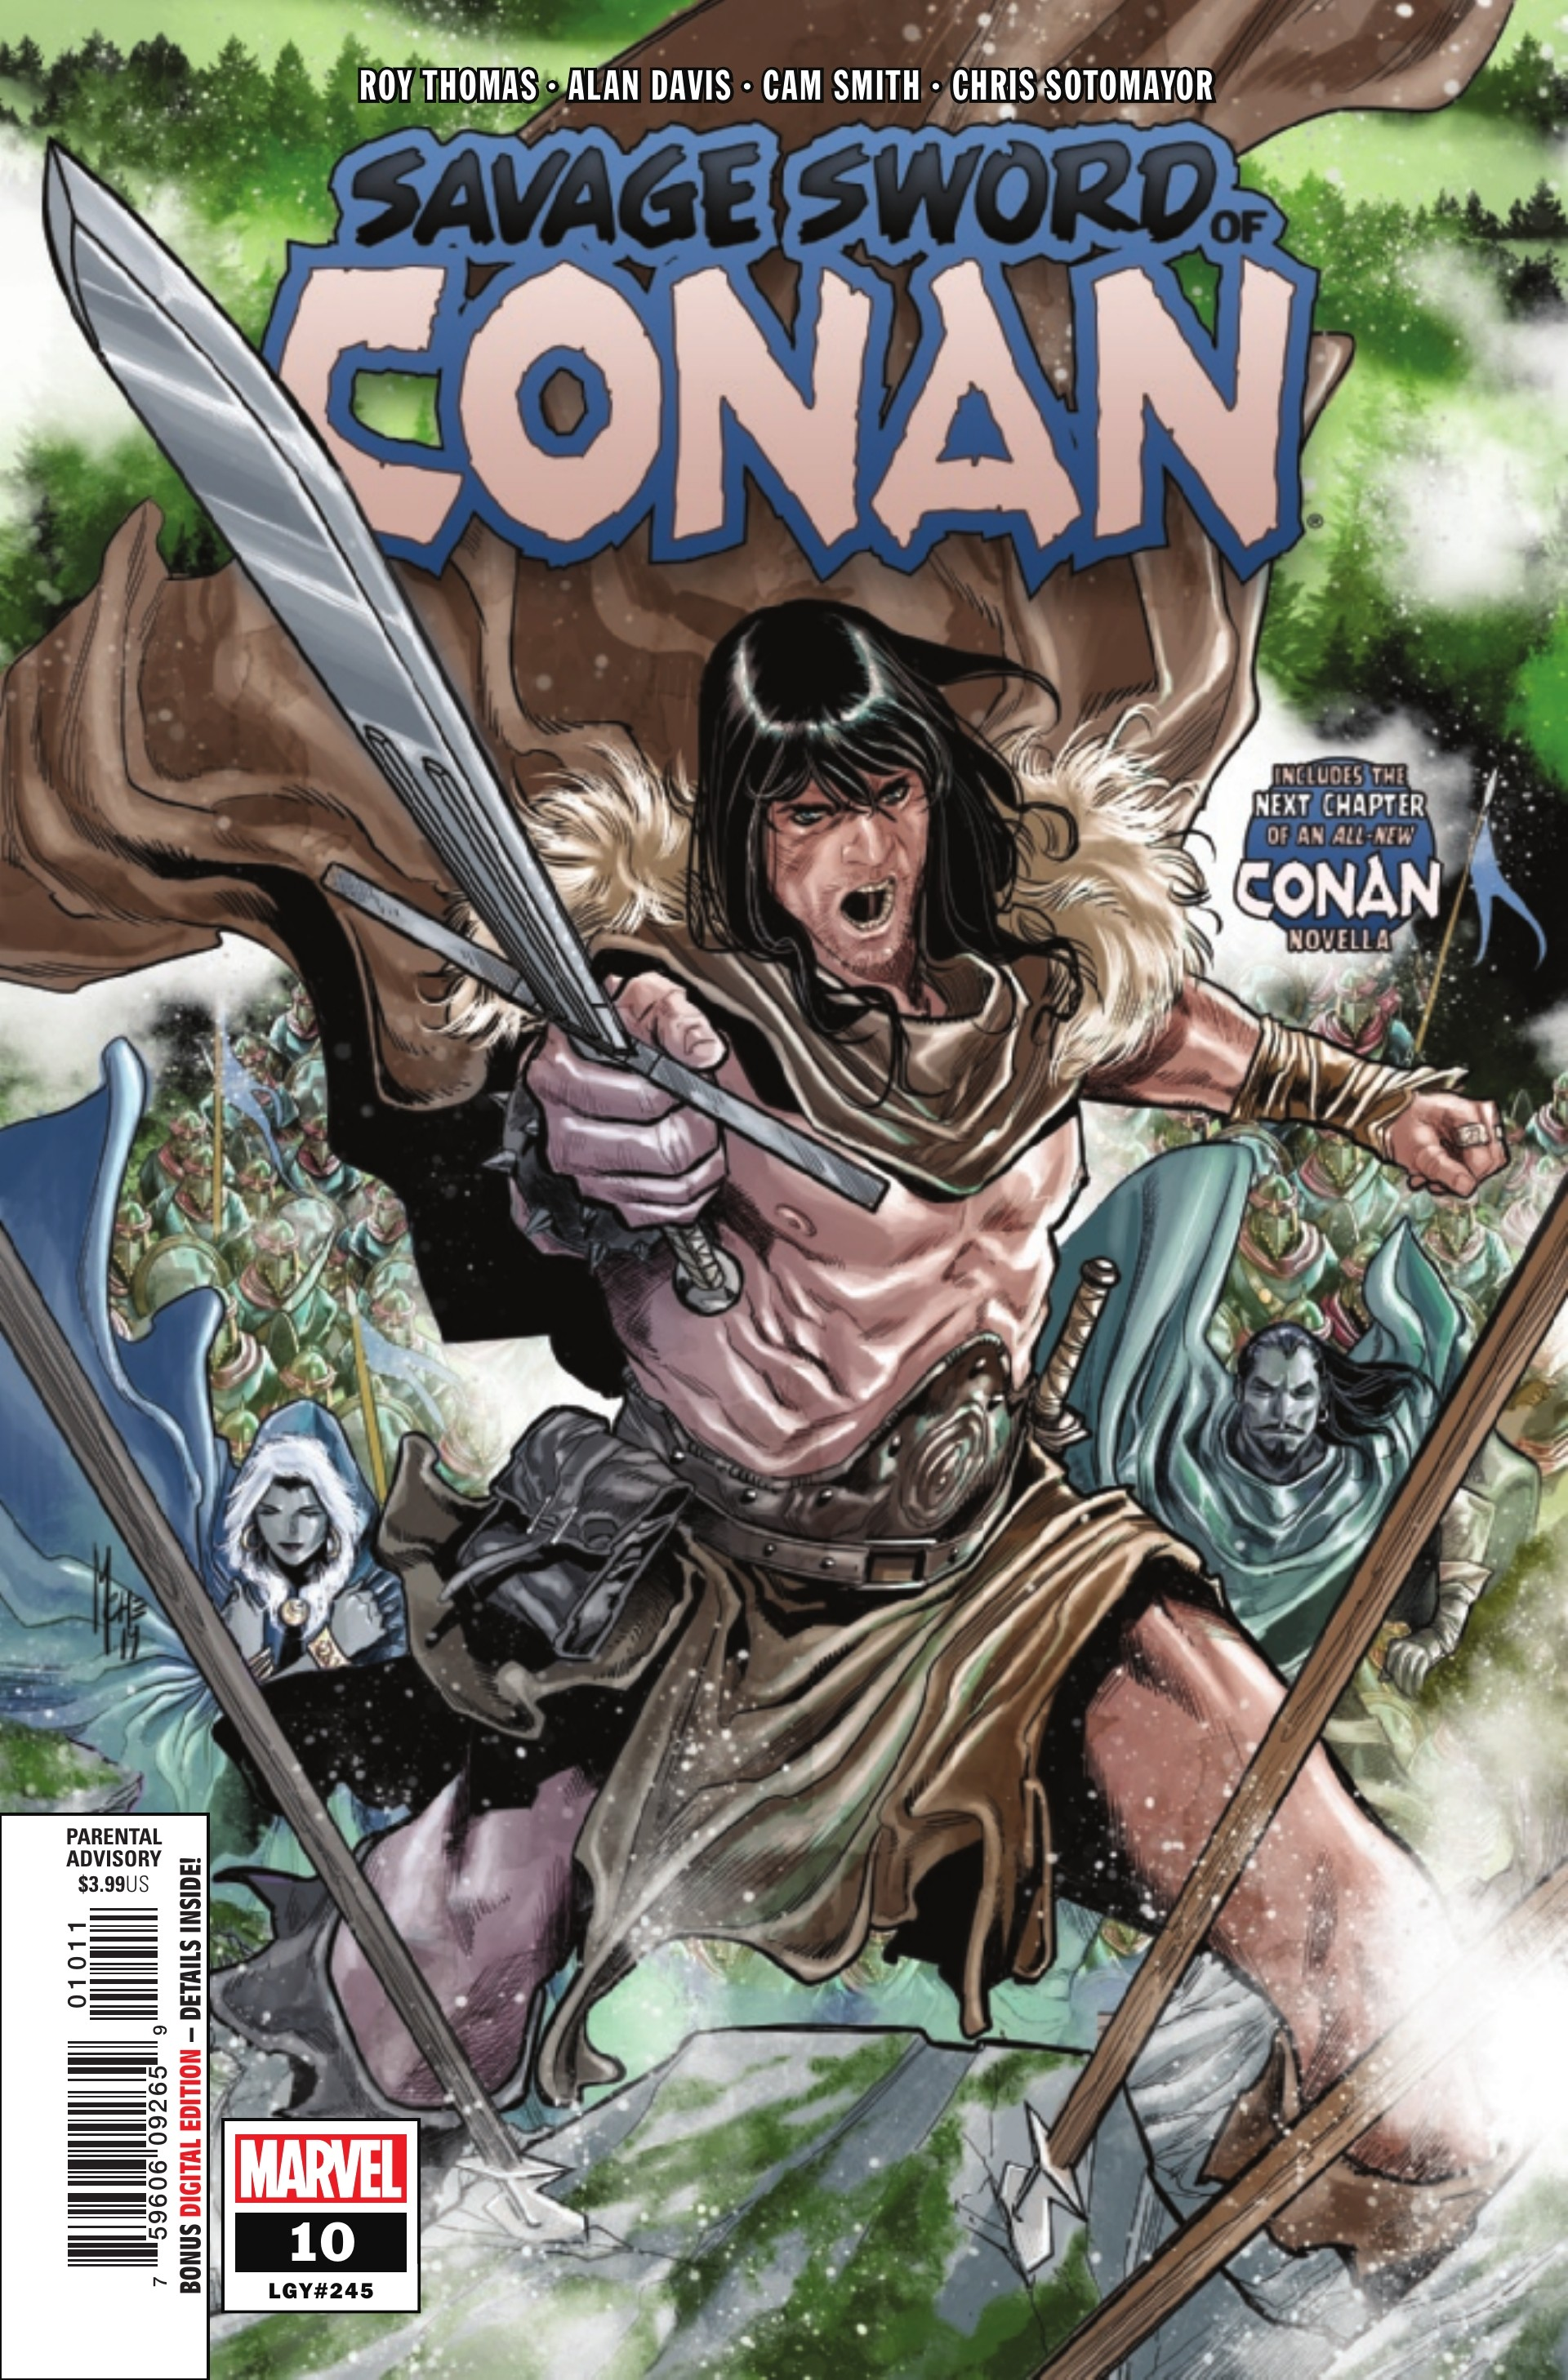 Preview: Savage Sword of Conan #10